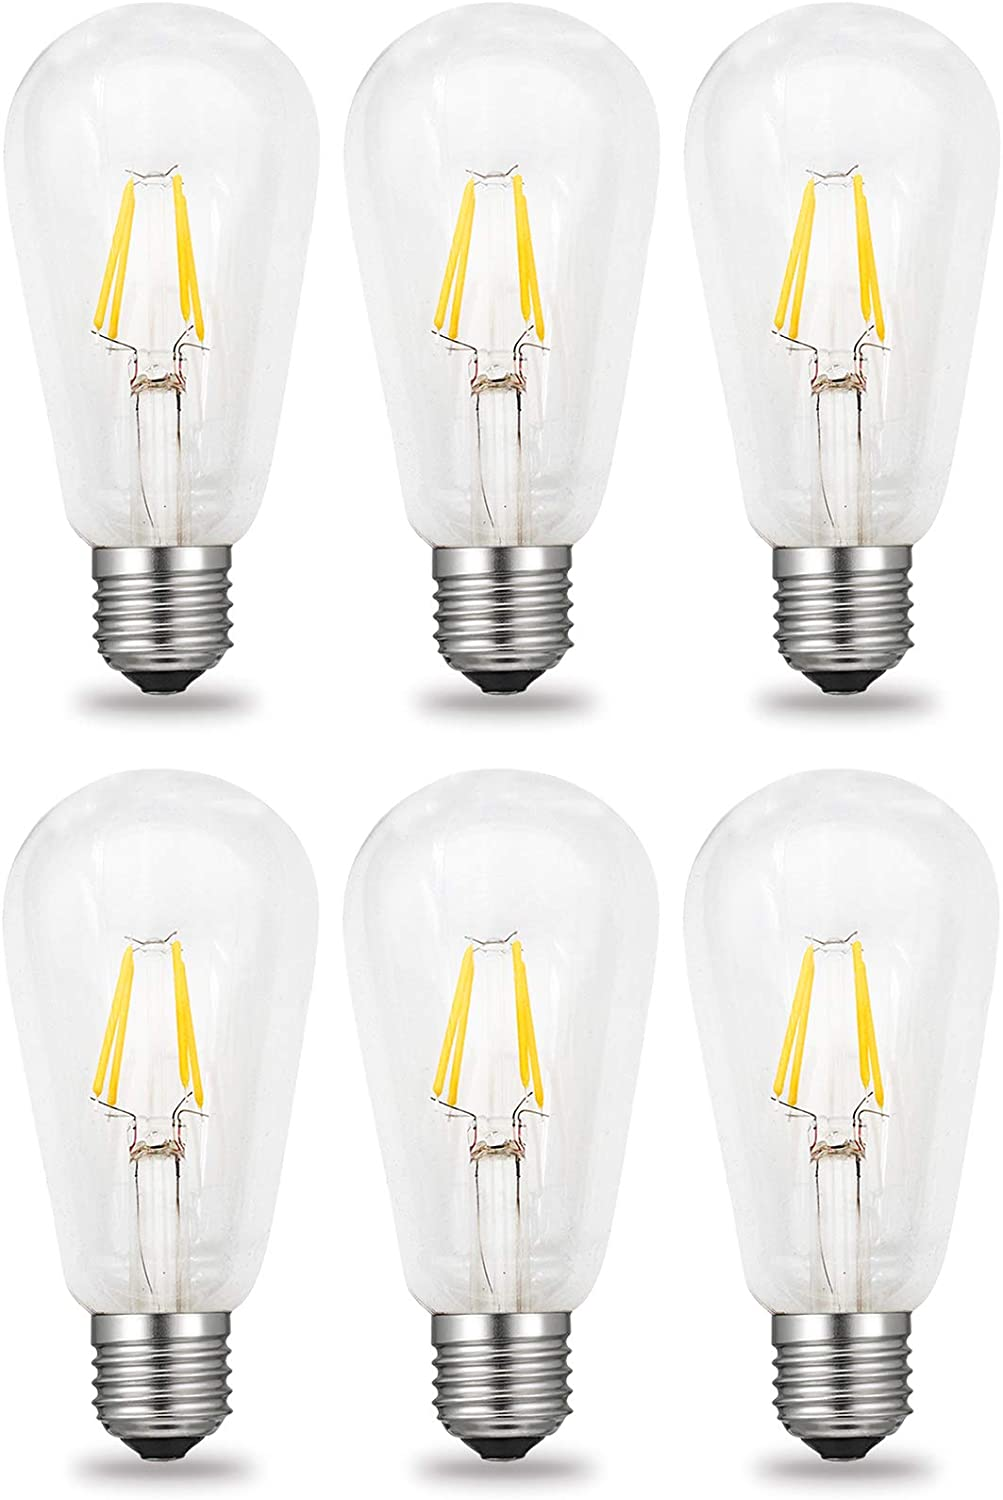 Cool White 6500 Kelvin 400LM iRotYi 1-Pack 40W Incandescent Bulbs Replacement Dimmable 4W AC 120V LED Filament Light Clear Glass Bulbs ST64 E26 Base Lamp